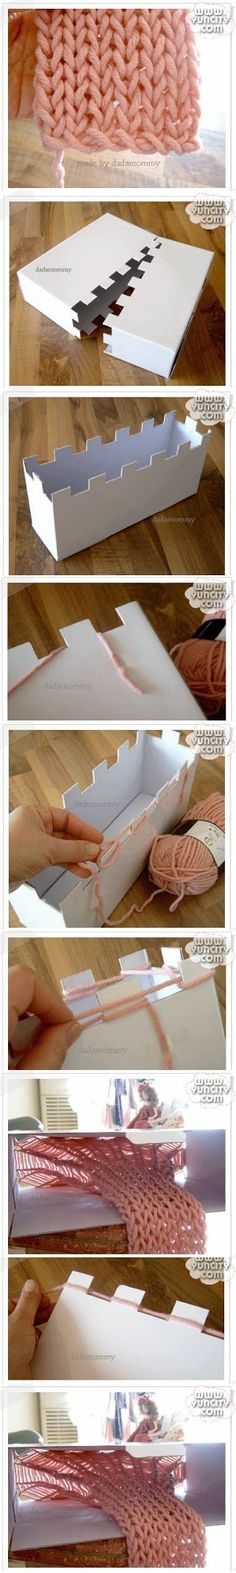 Circular knitting without needles! ❥Teresa Restegui http://www.pinterest.com/teretegui/❥